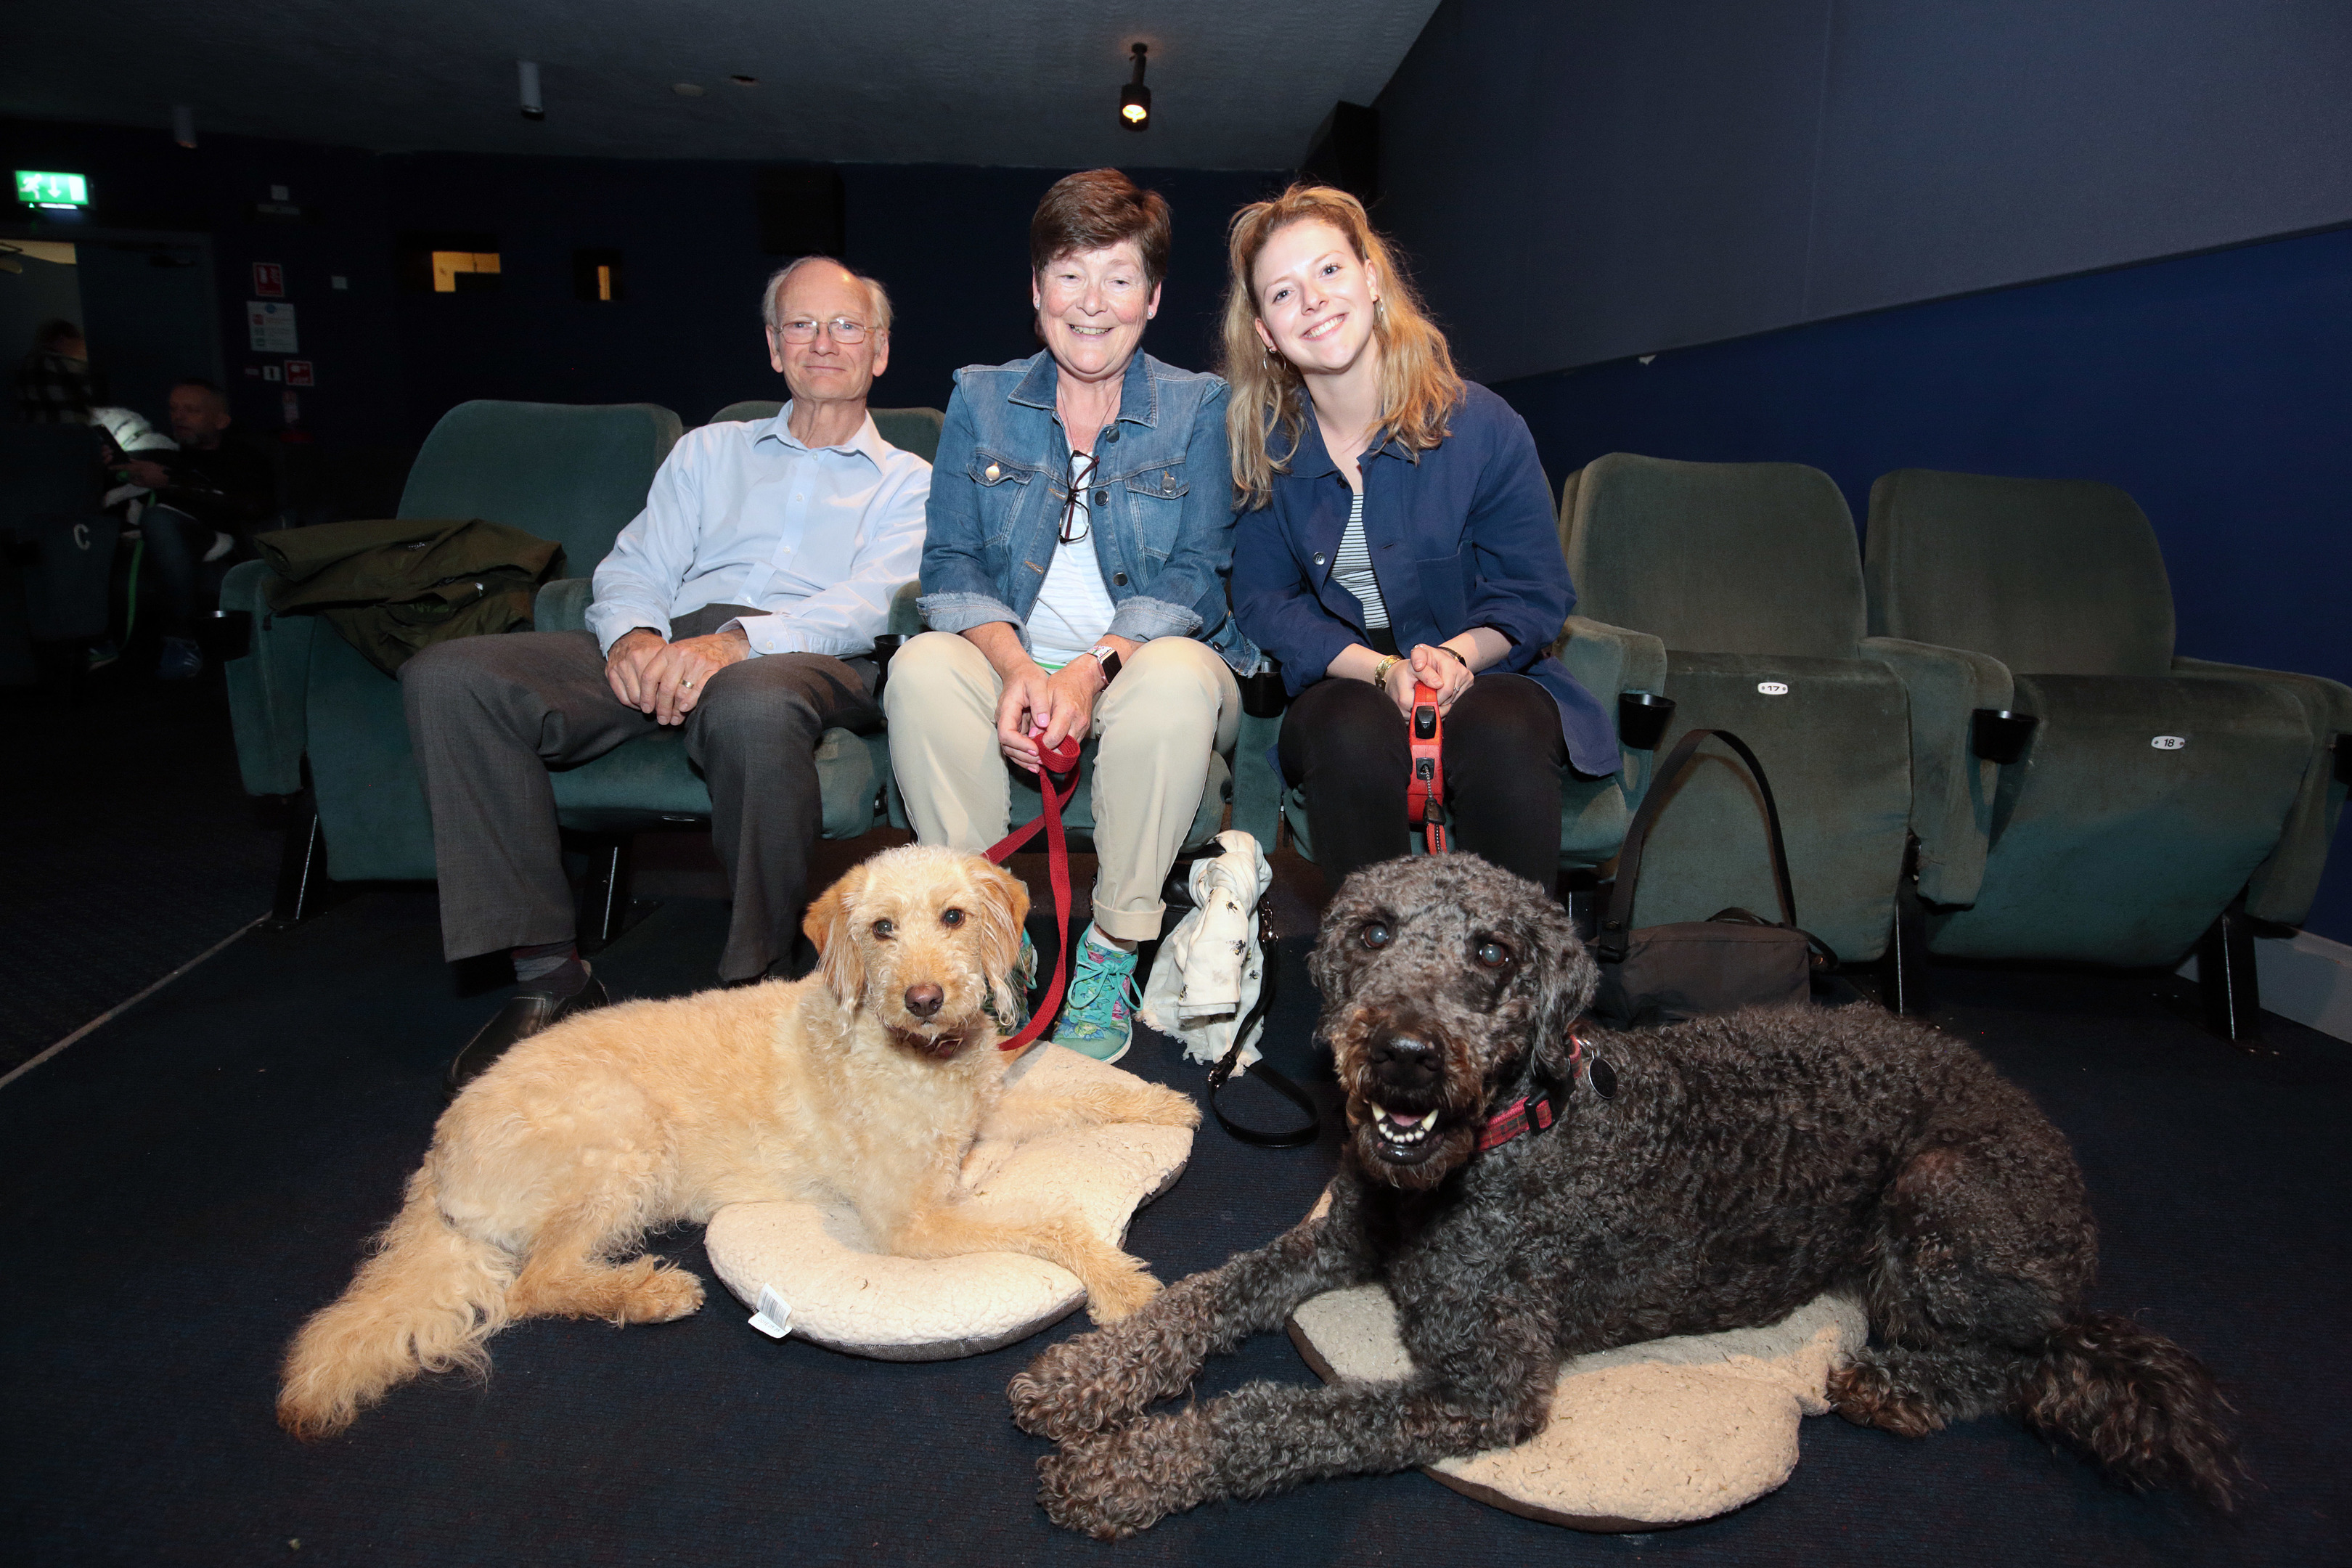 Waiting for the film to start are Keith, Debbie and Christina Gordon with Bonnie (left) and Cormac.